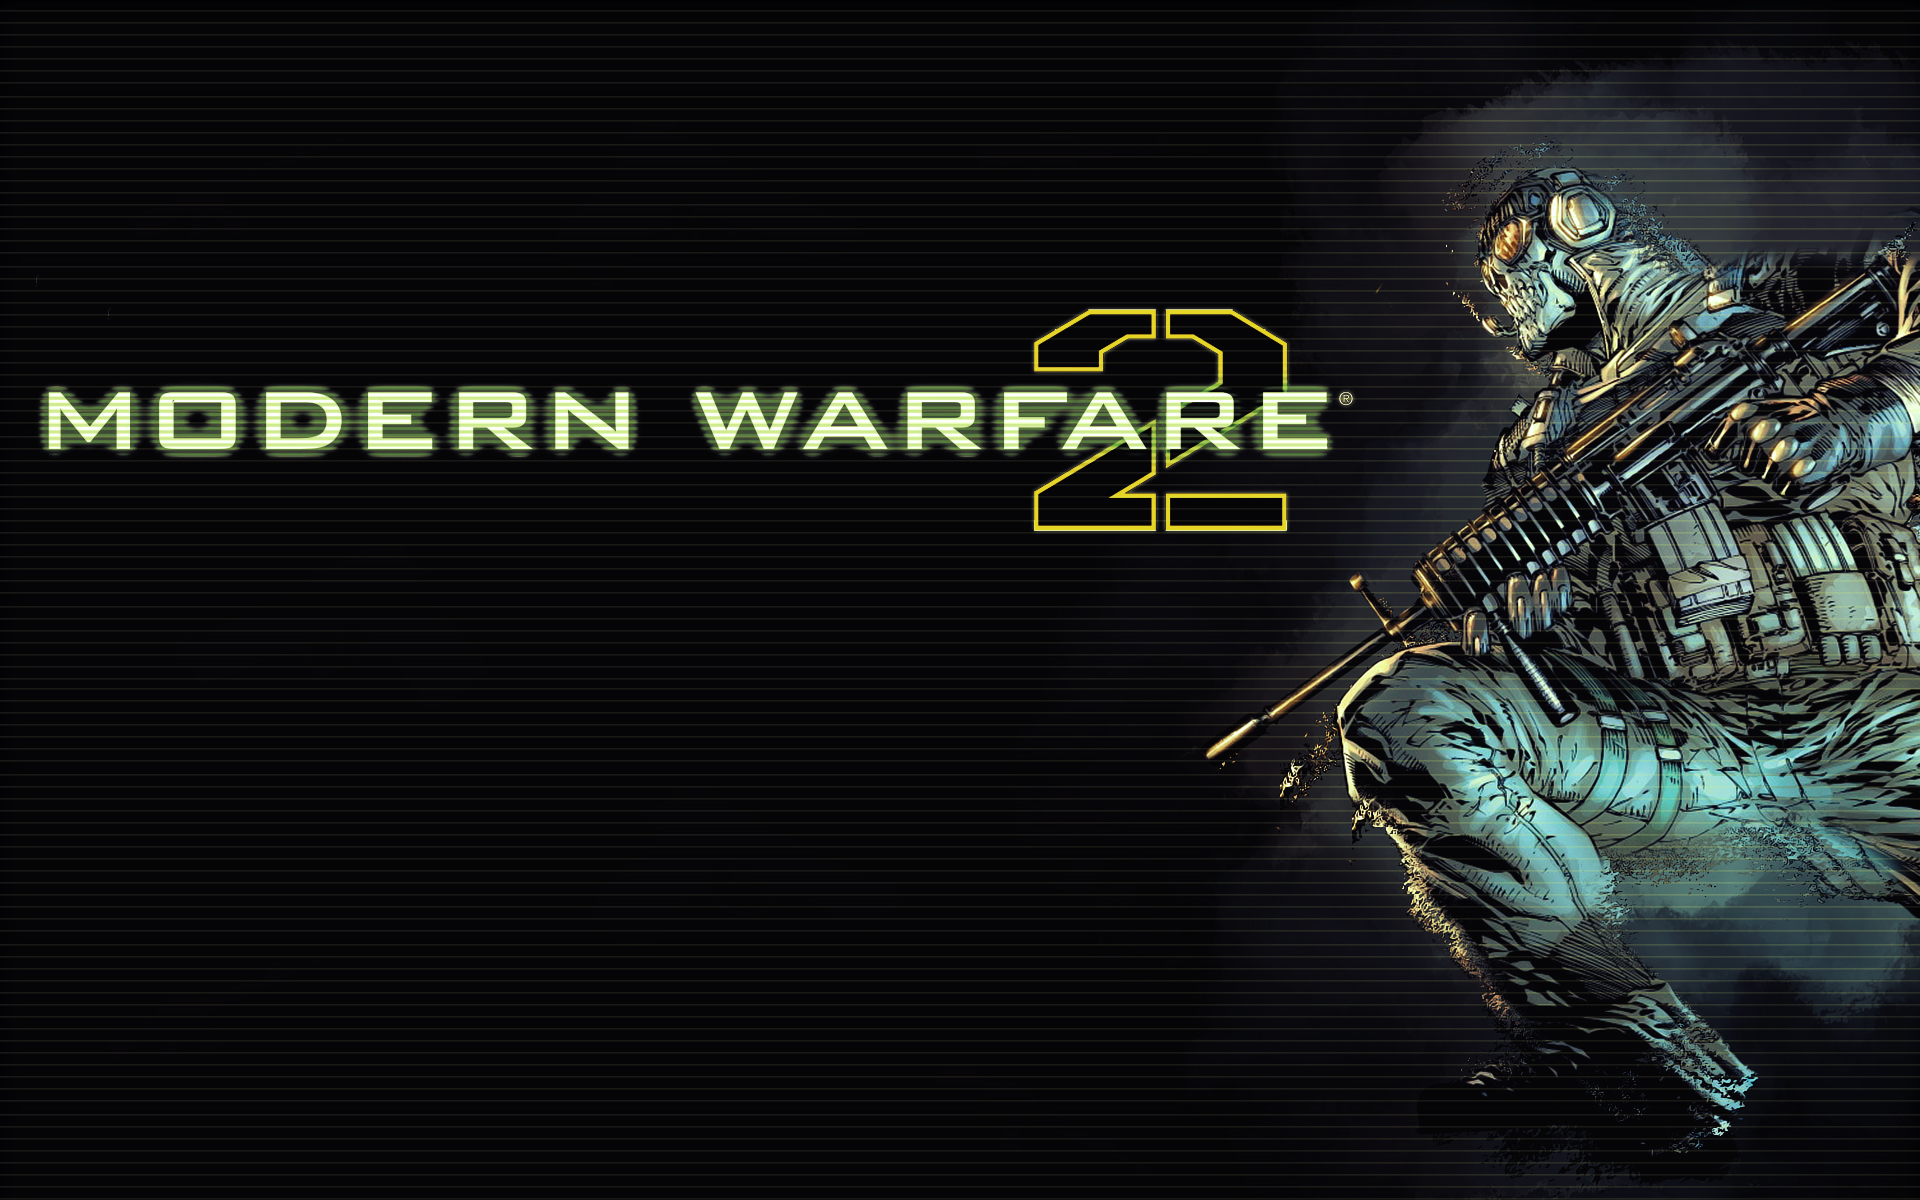 Call Of Duty Modern Warfare 2 Wallpapers Pictures Images